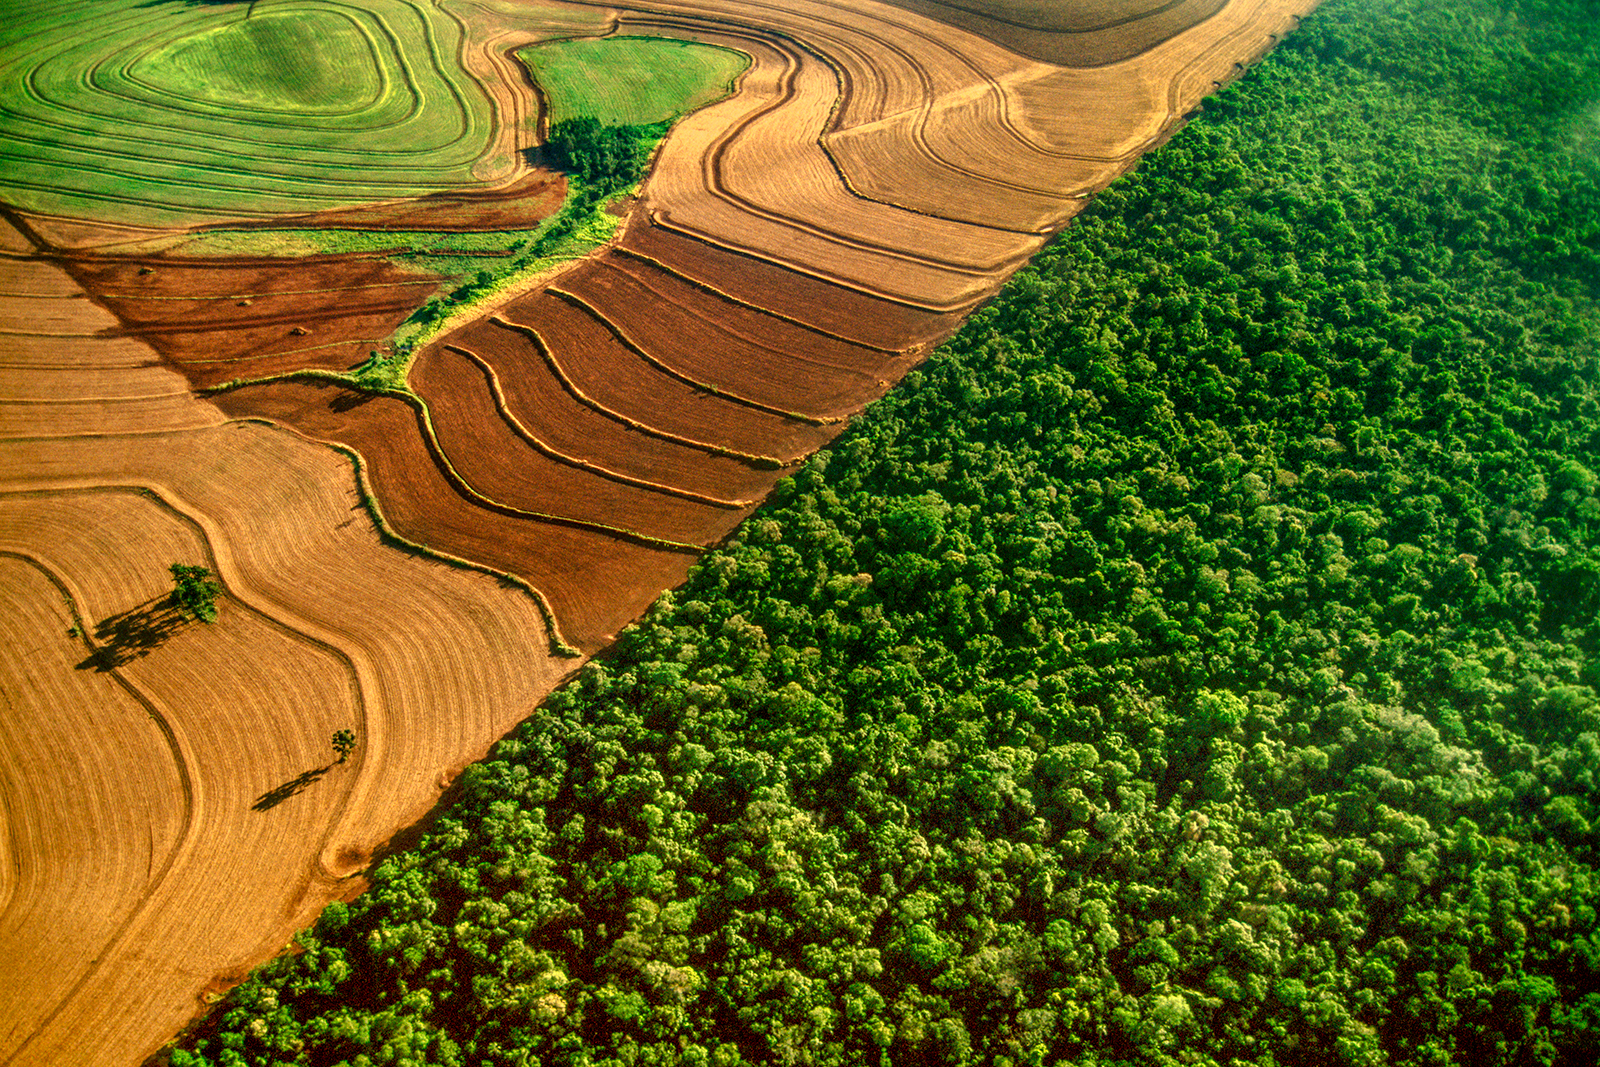 Cropland bordering rainforest, Frans Lanting